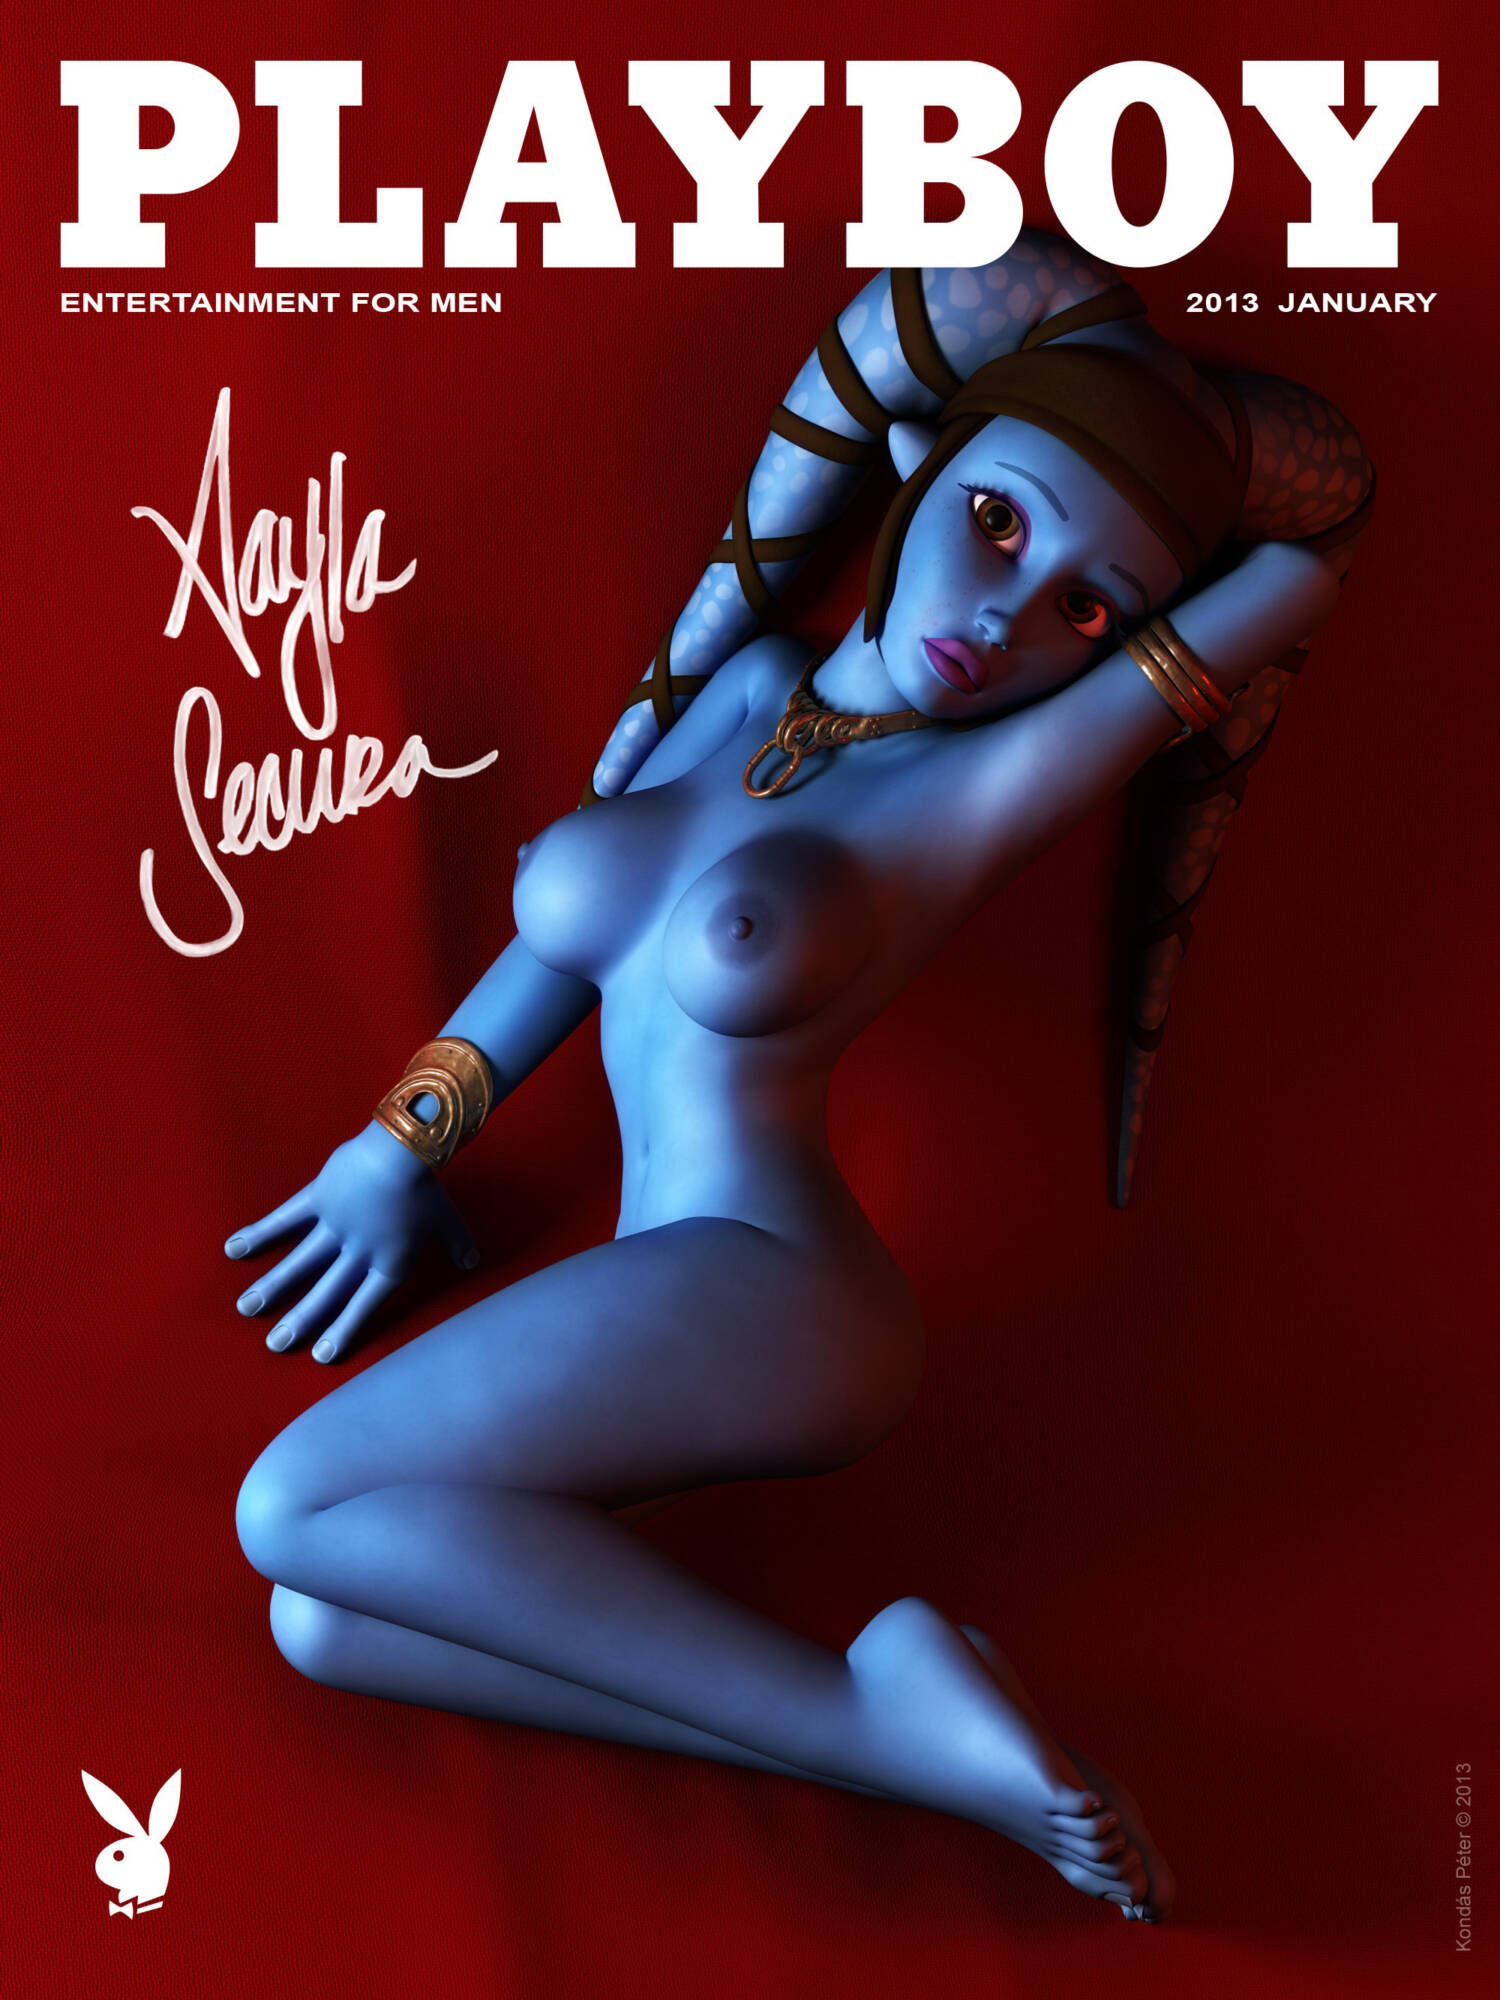 Playboy Covers and Centerfolds - page09 Aayla Secura On Playboy Cover A Fox's Tale,Crossover,Planet 51,Smurfs,Star Wars,  xxx porn rule34